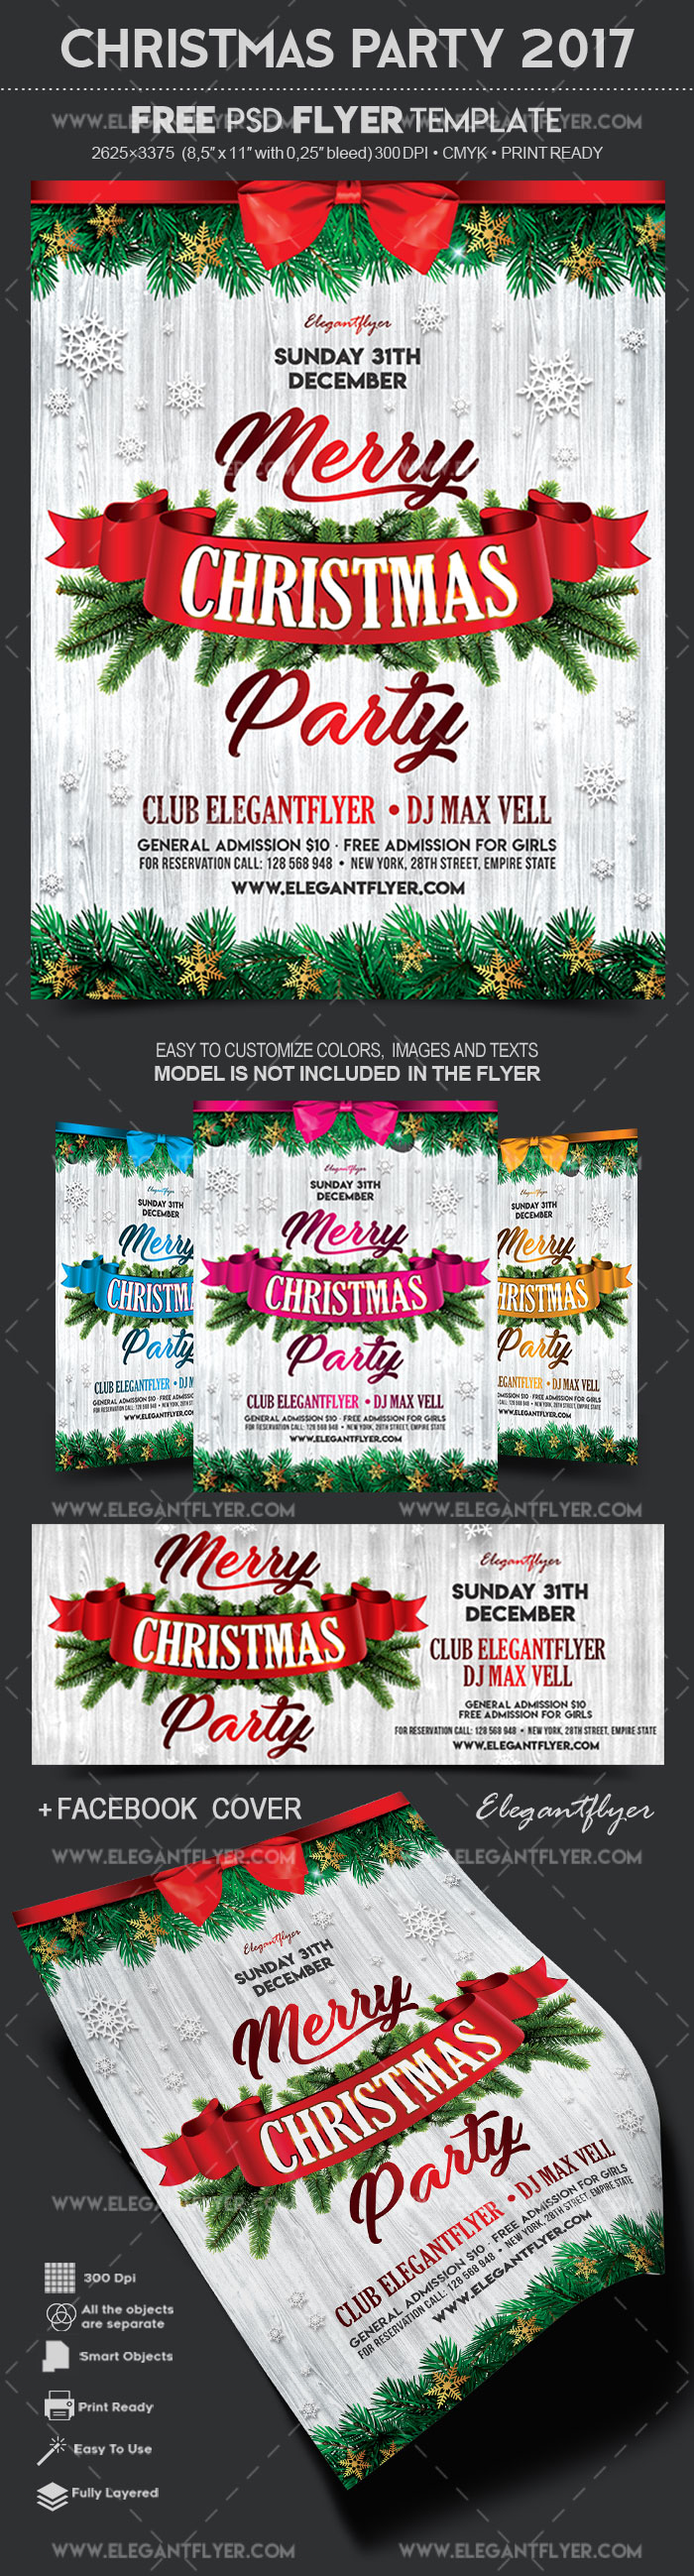 Christmas Party 2017 – Free Flyer PSD Template